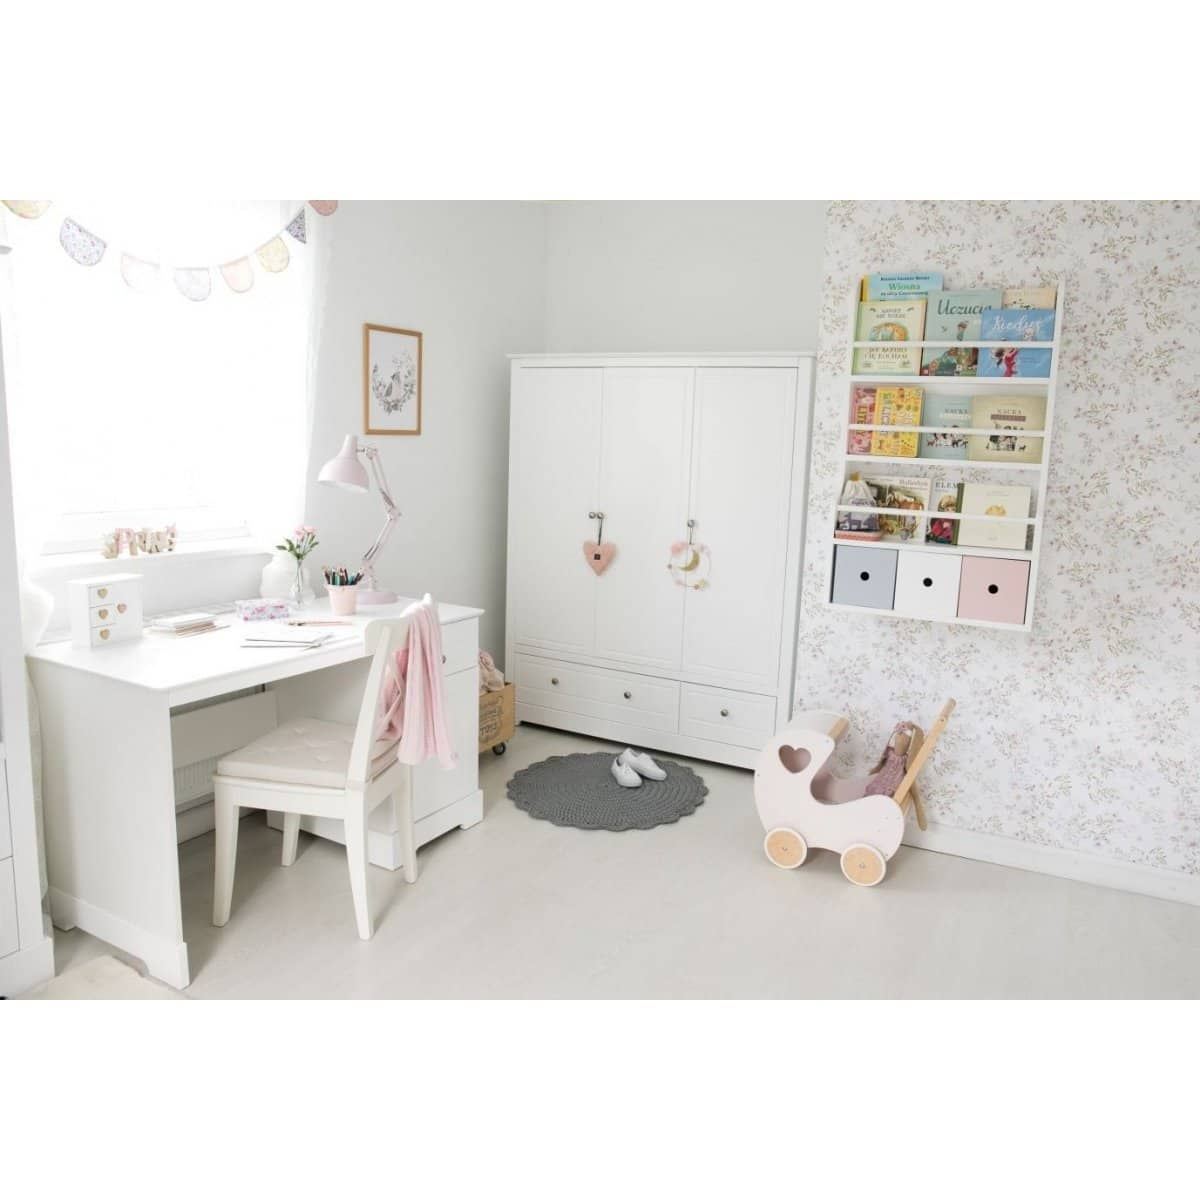 Marylou Young Users - Kids Computer Desk in White  from interie furniture